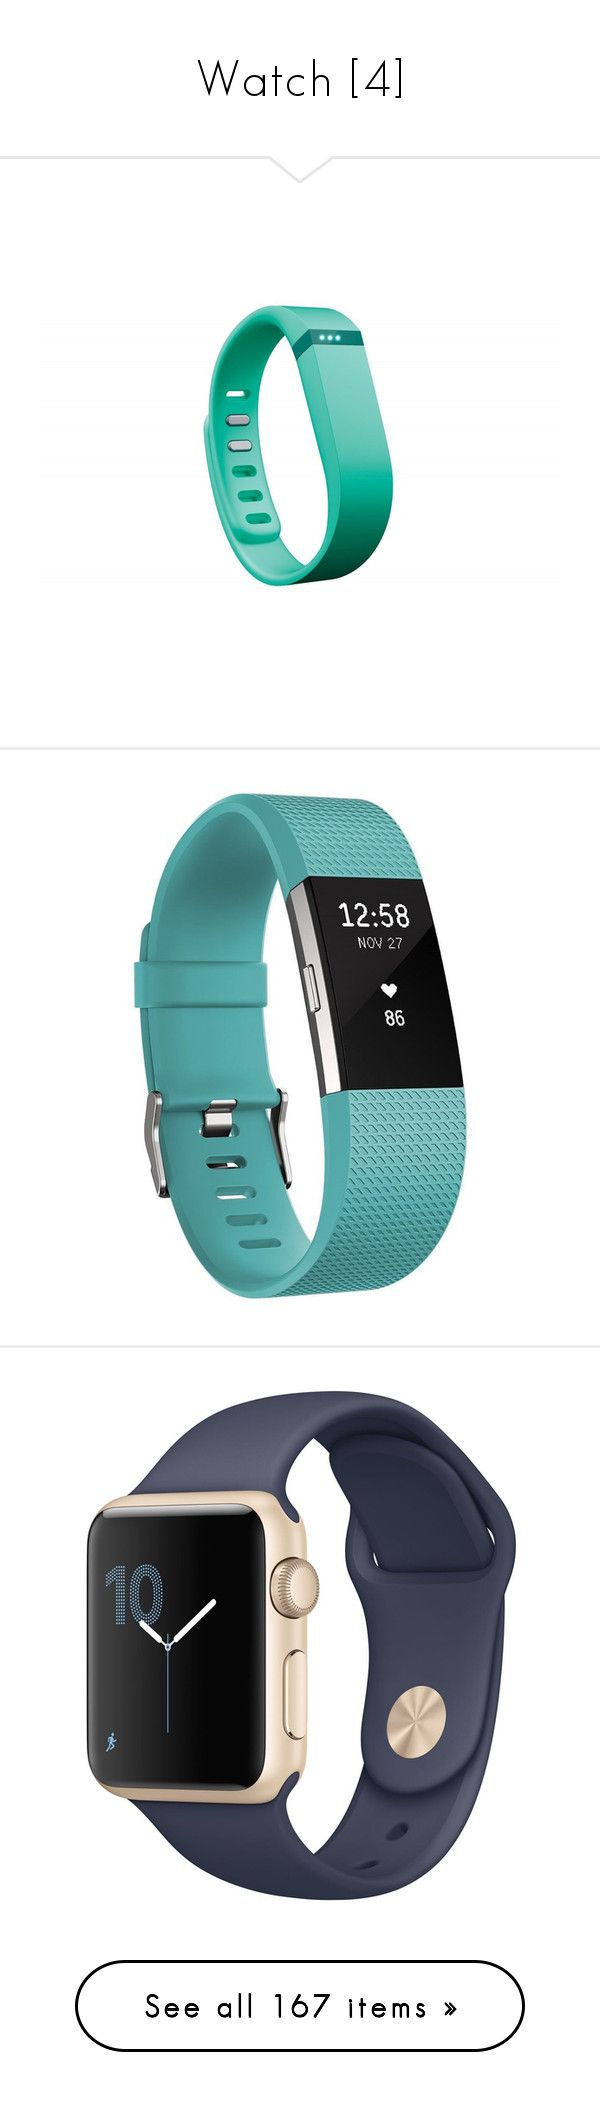 """""""Watch [4]"""" by gdavilla ❤ liked on Polyvore featuring accessories, bracelets, fitness, jewelry, watches, teal, fitbit watches, alarm wrist watch, fitbit jewelry and heart jewelry"""